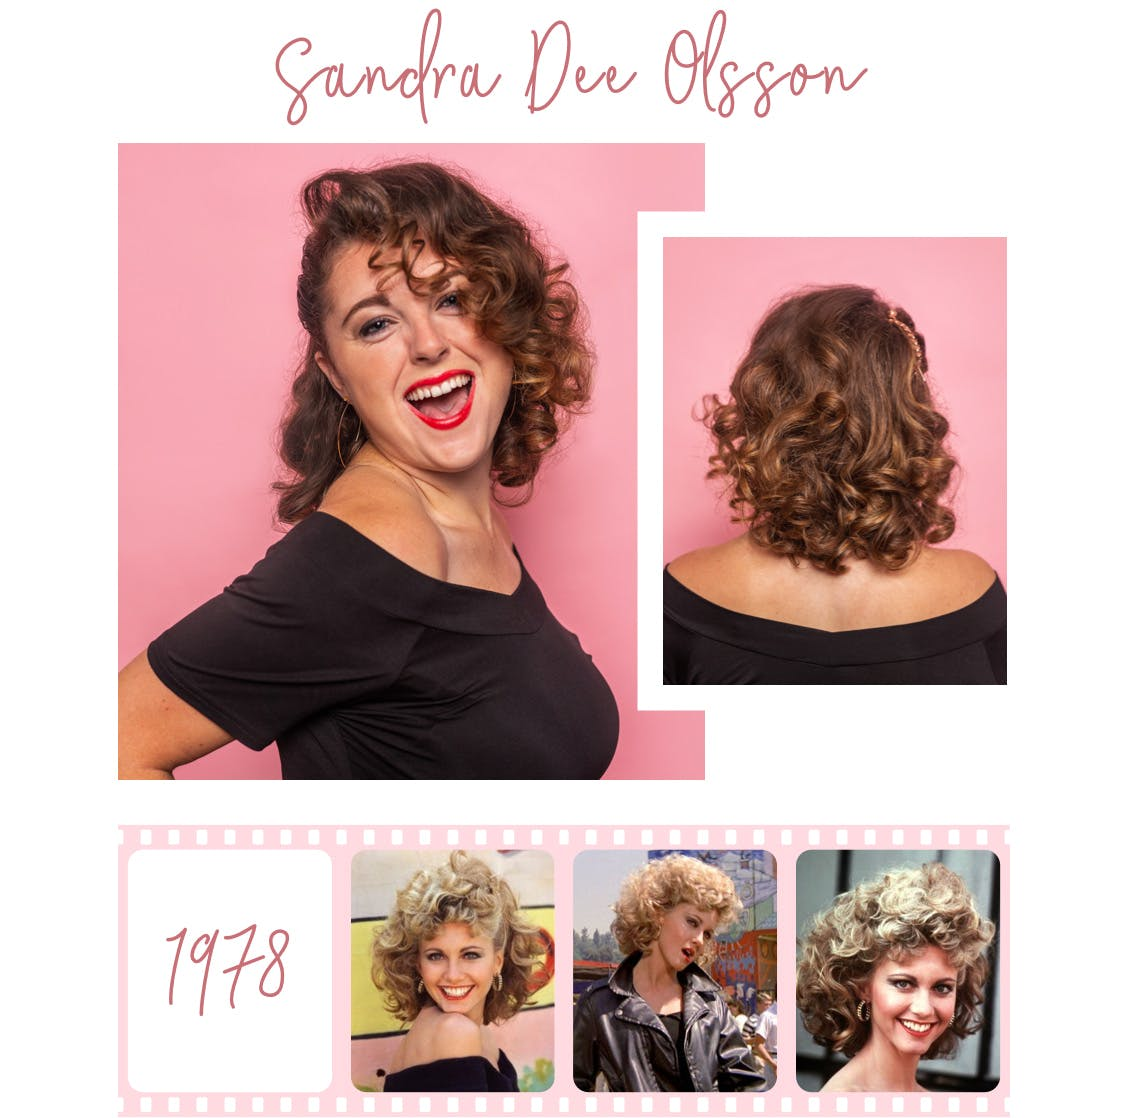 Image of esalon employee dressed as sandra dee with light brunette hair color and original image of actress below from 1978 film grease